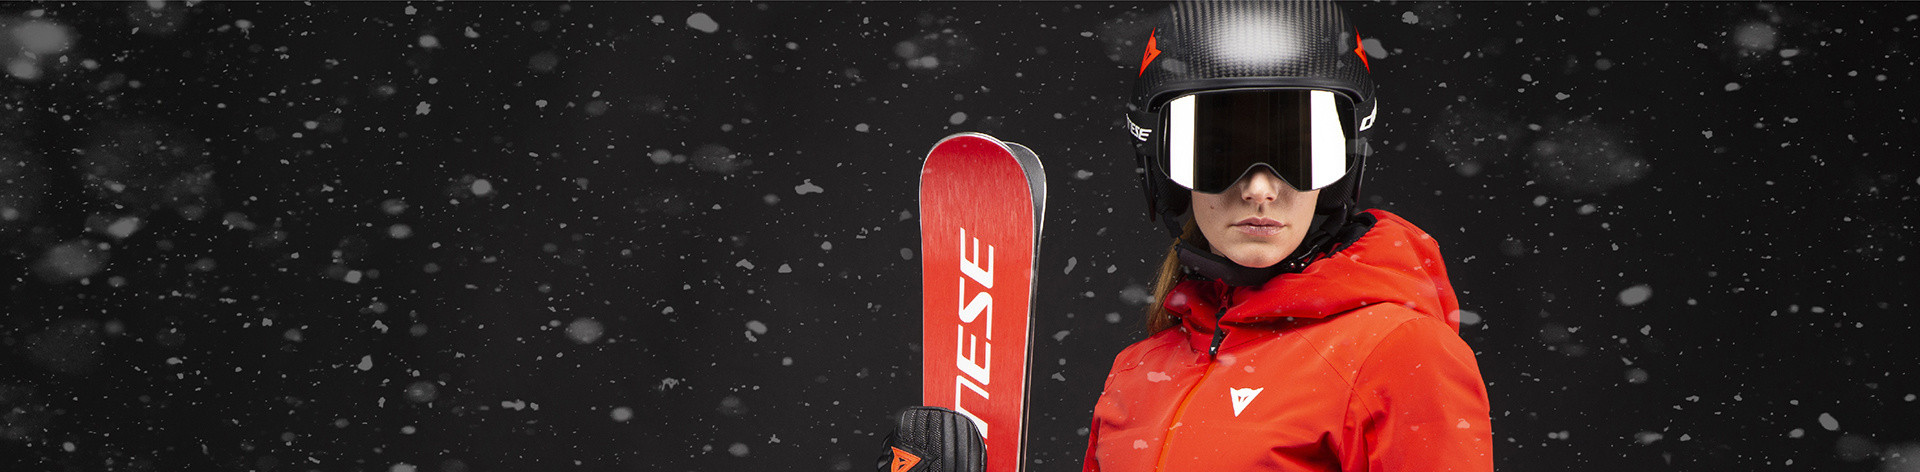 Dainese Winter Sports woman